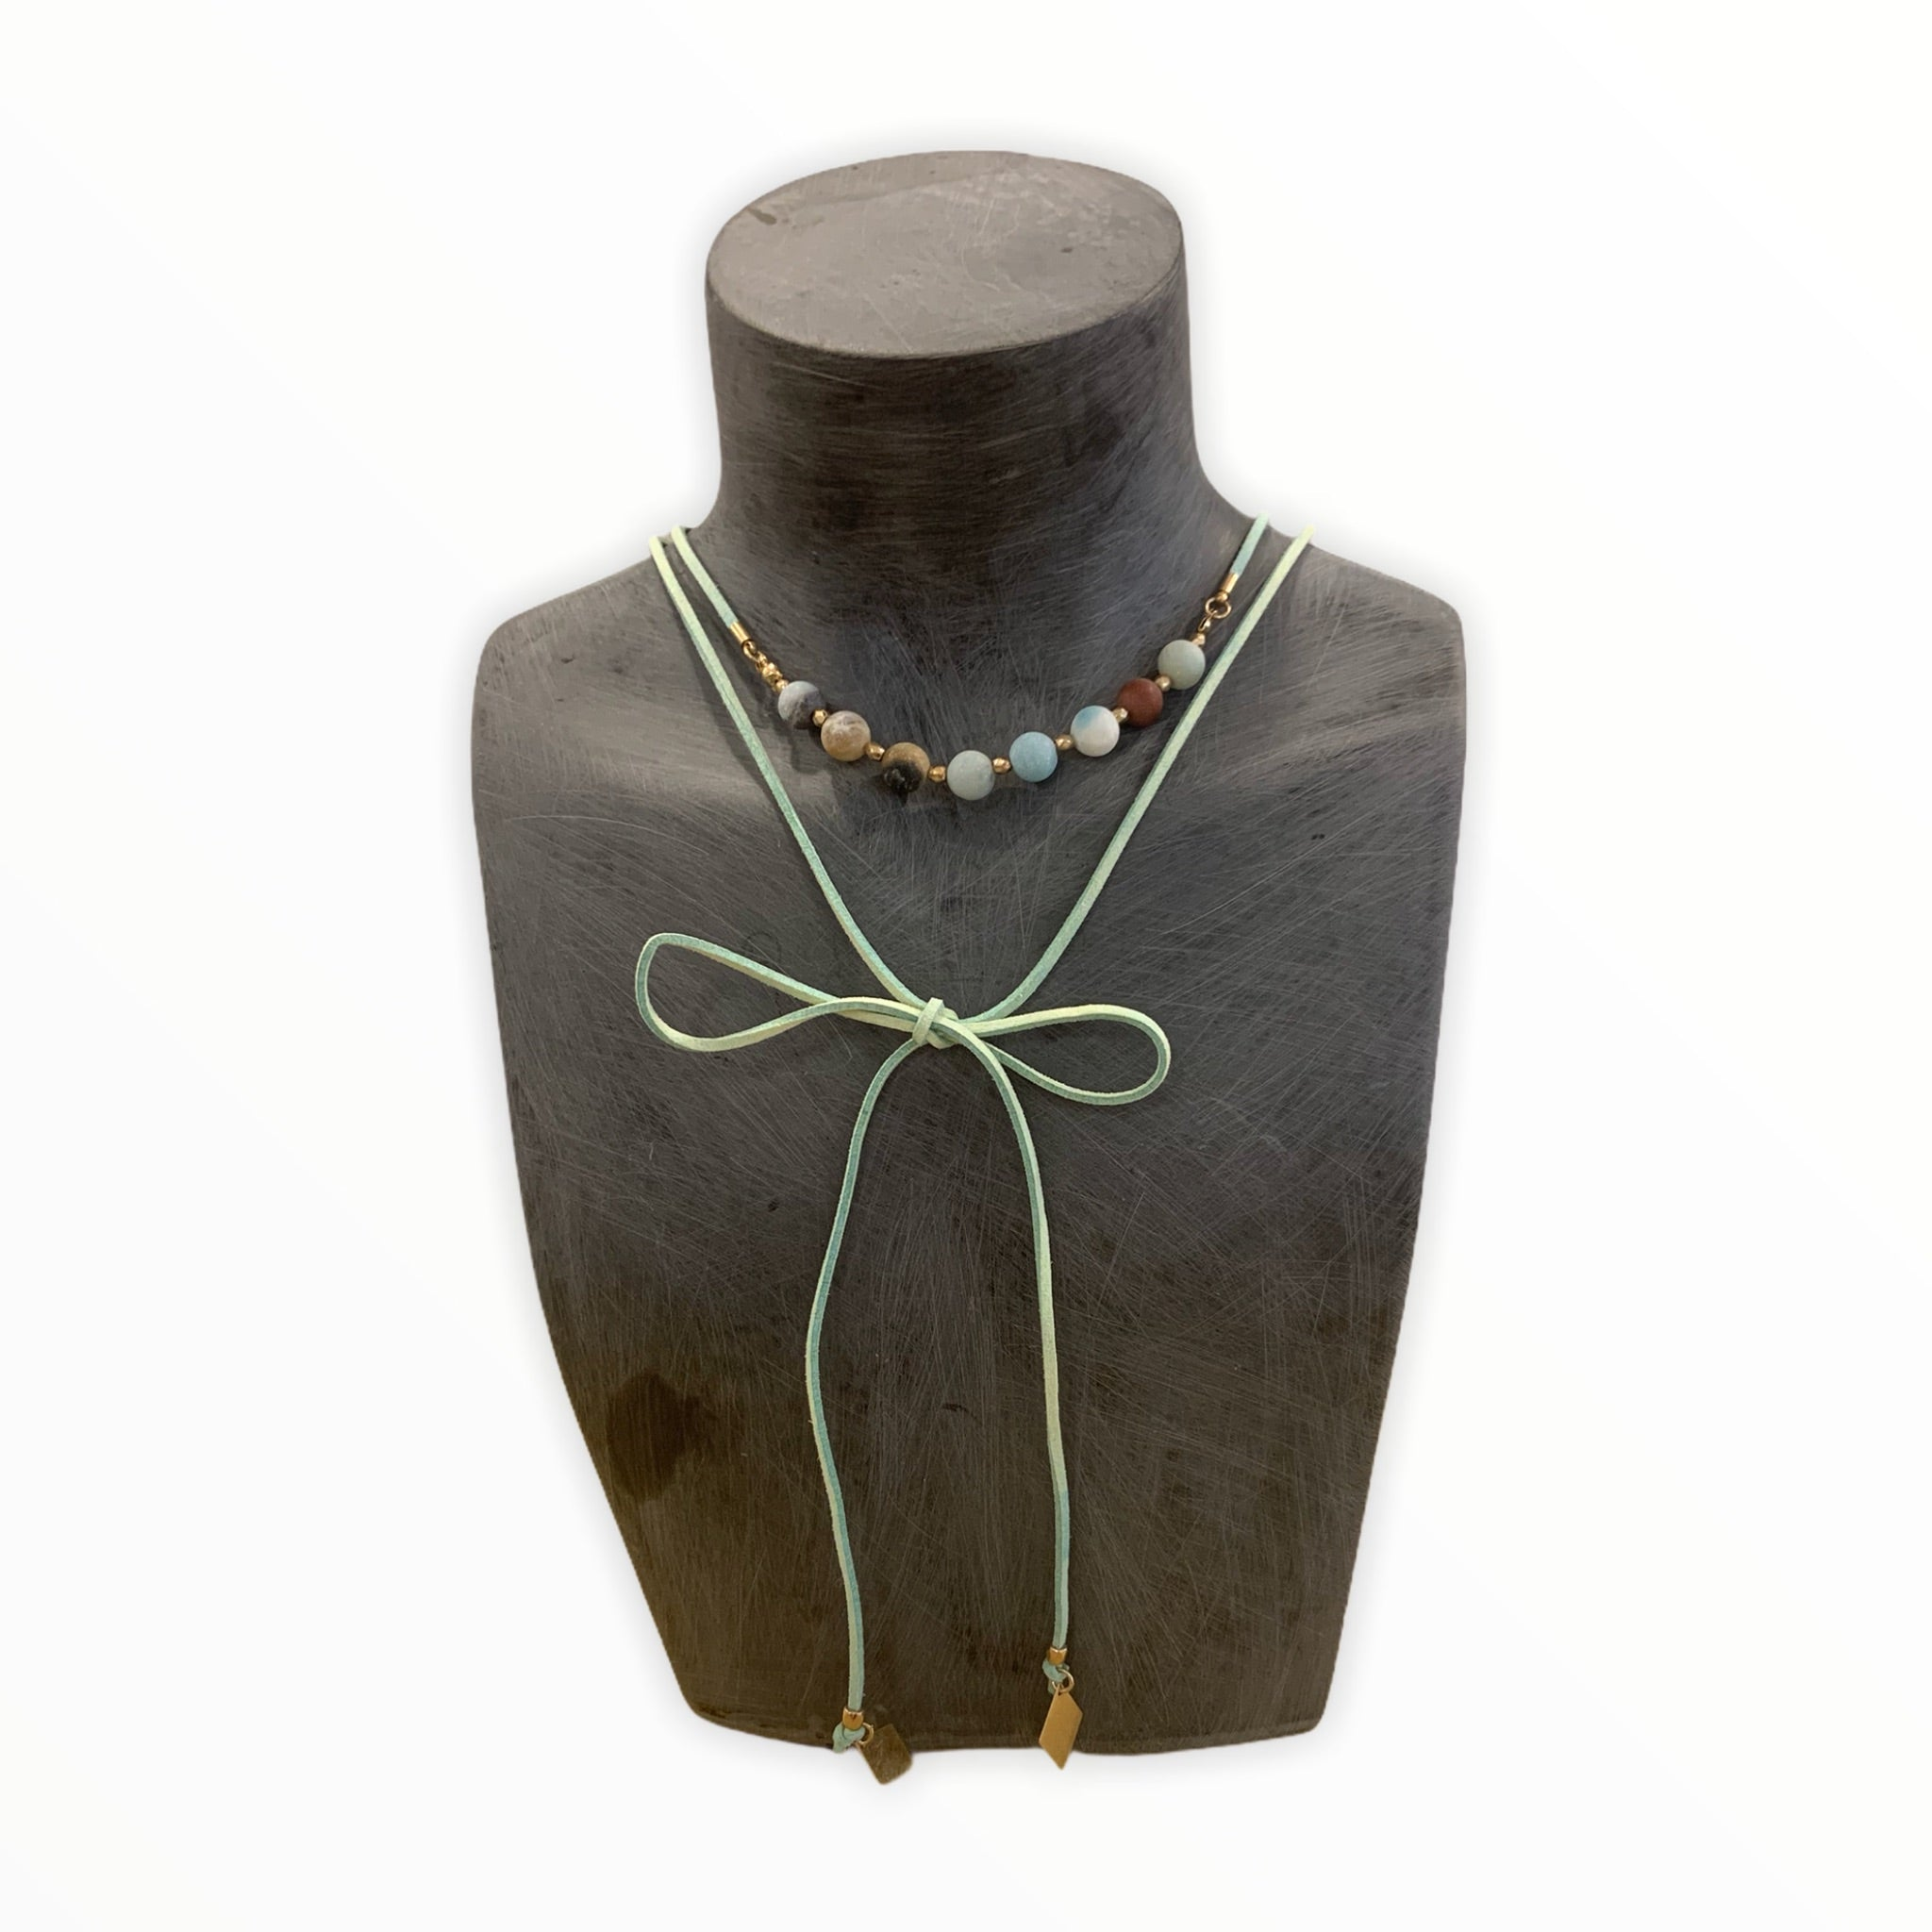 Mint beads and Leather Choker